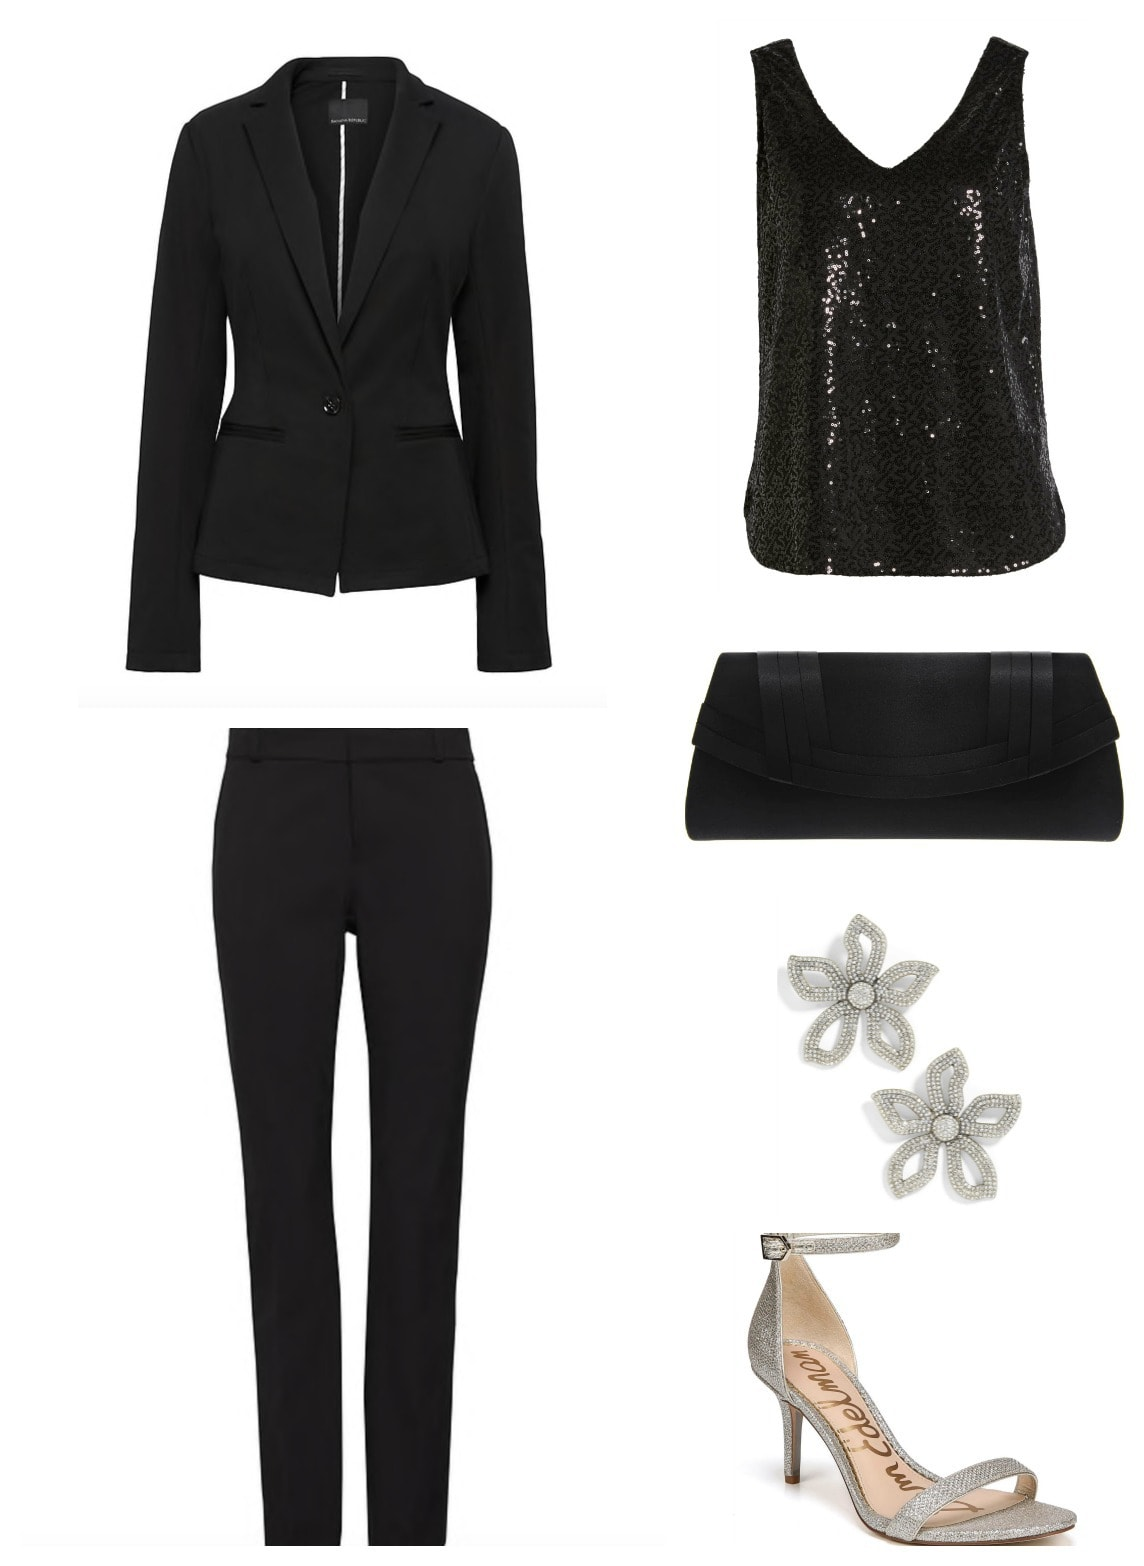 Black dressy cocktail pantsuit with silver and black accents